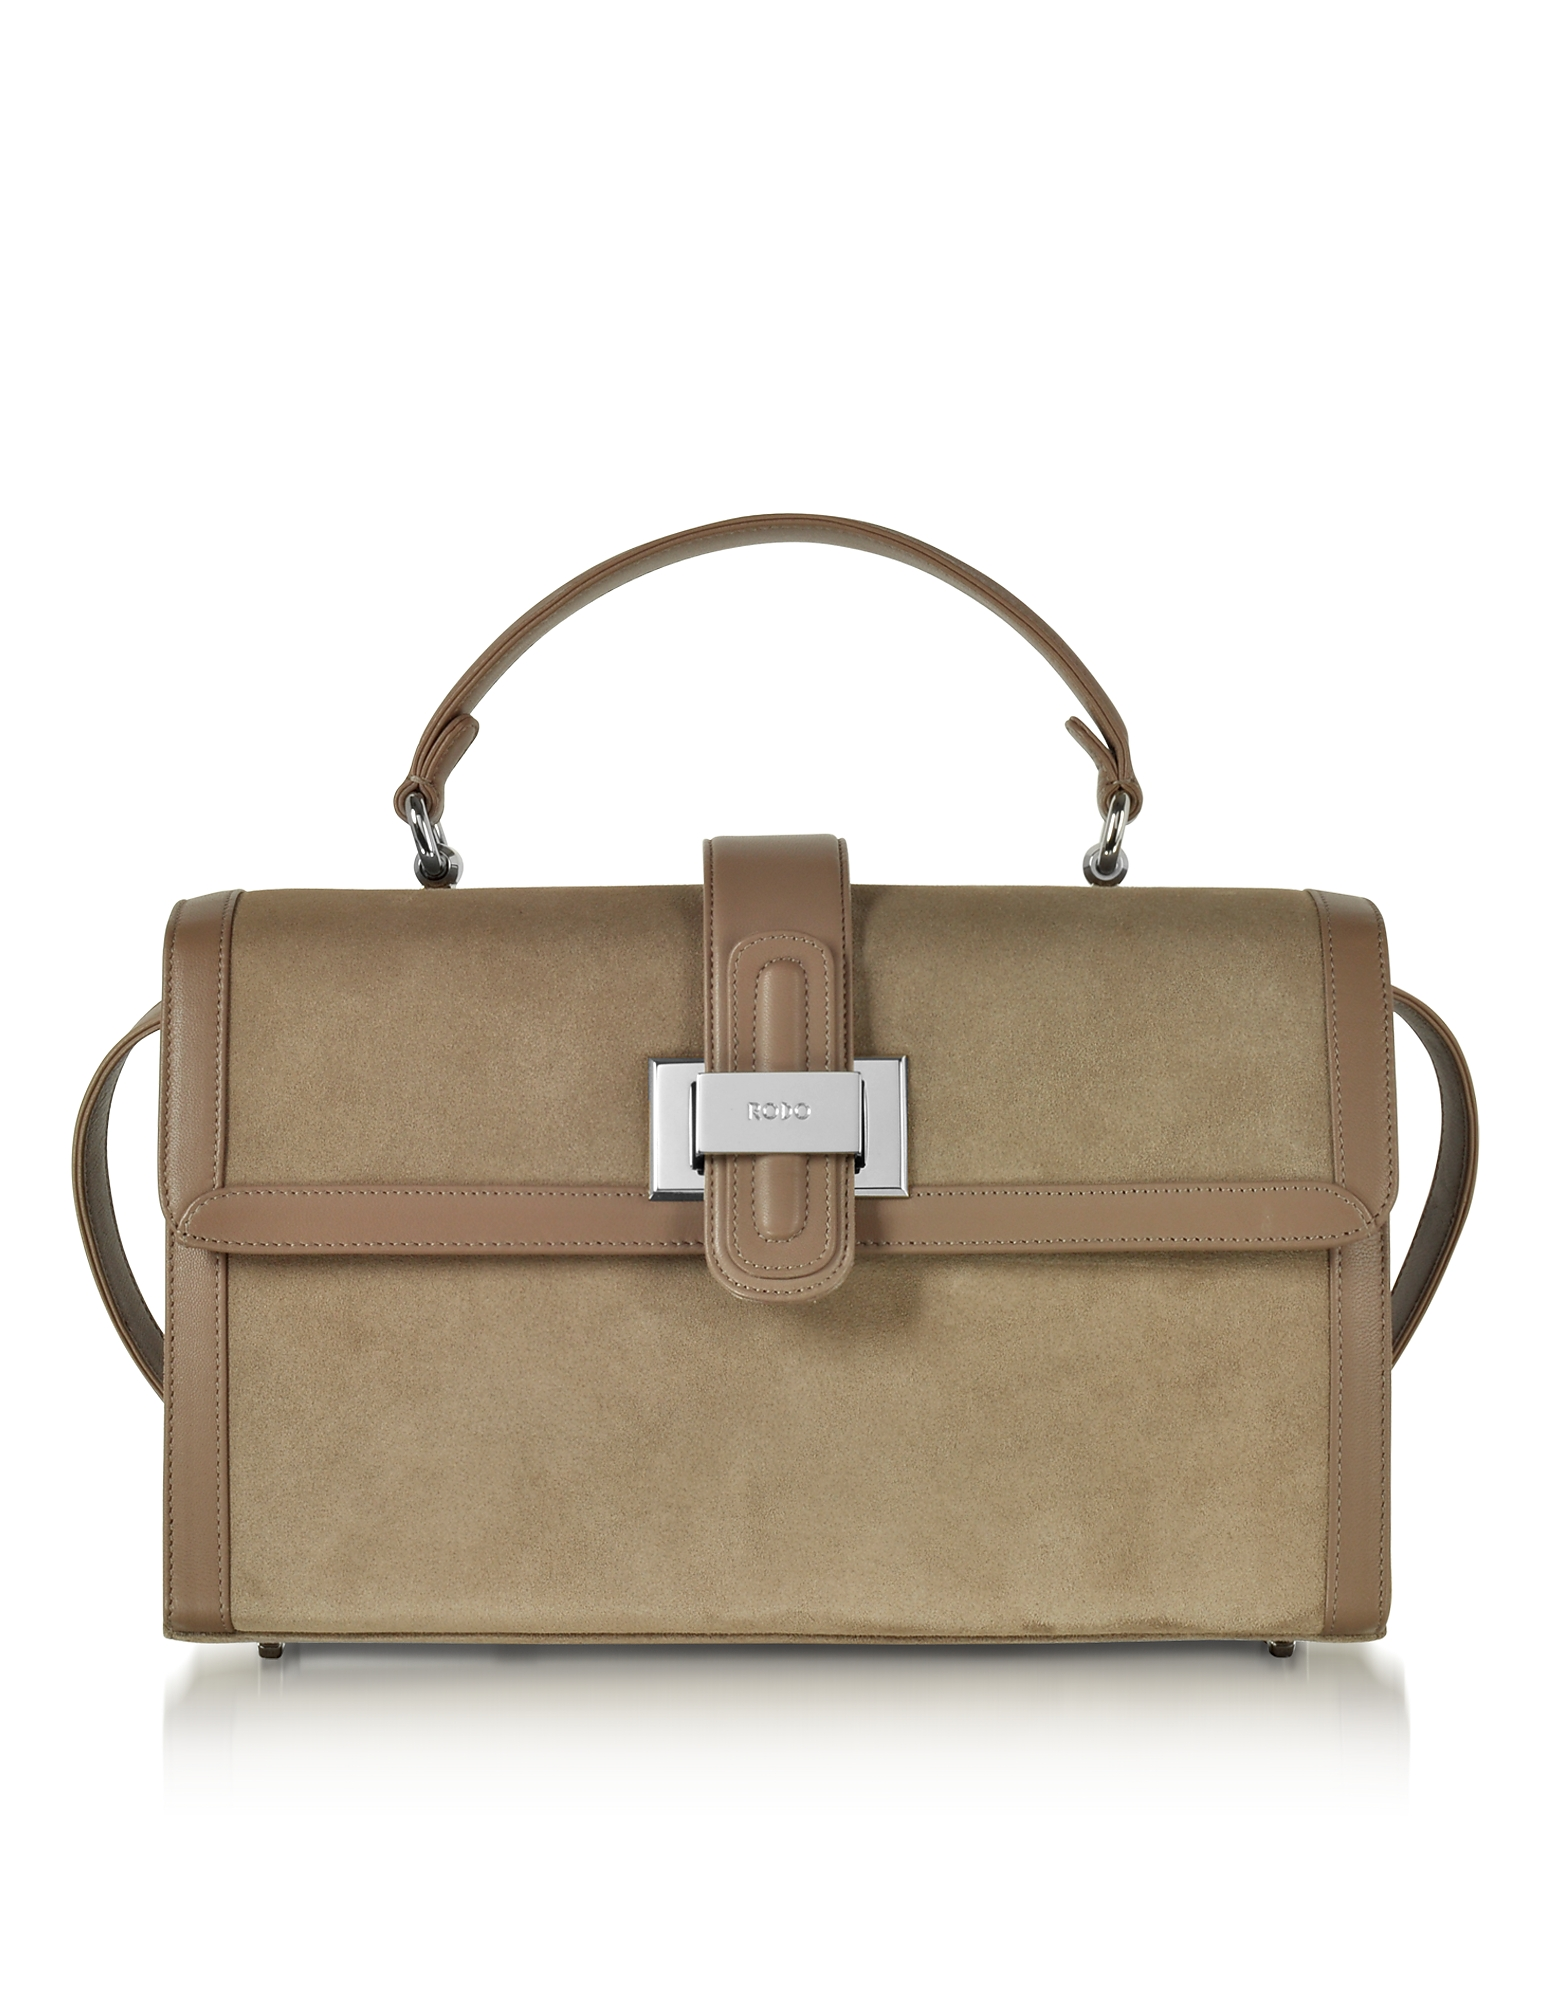 Rodo Handbags, Taupe Suede and Leather Lunch Bag